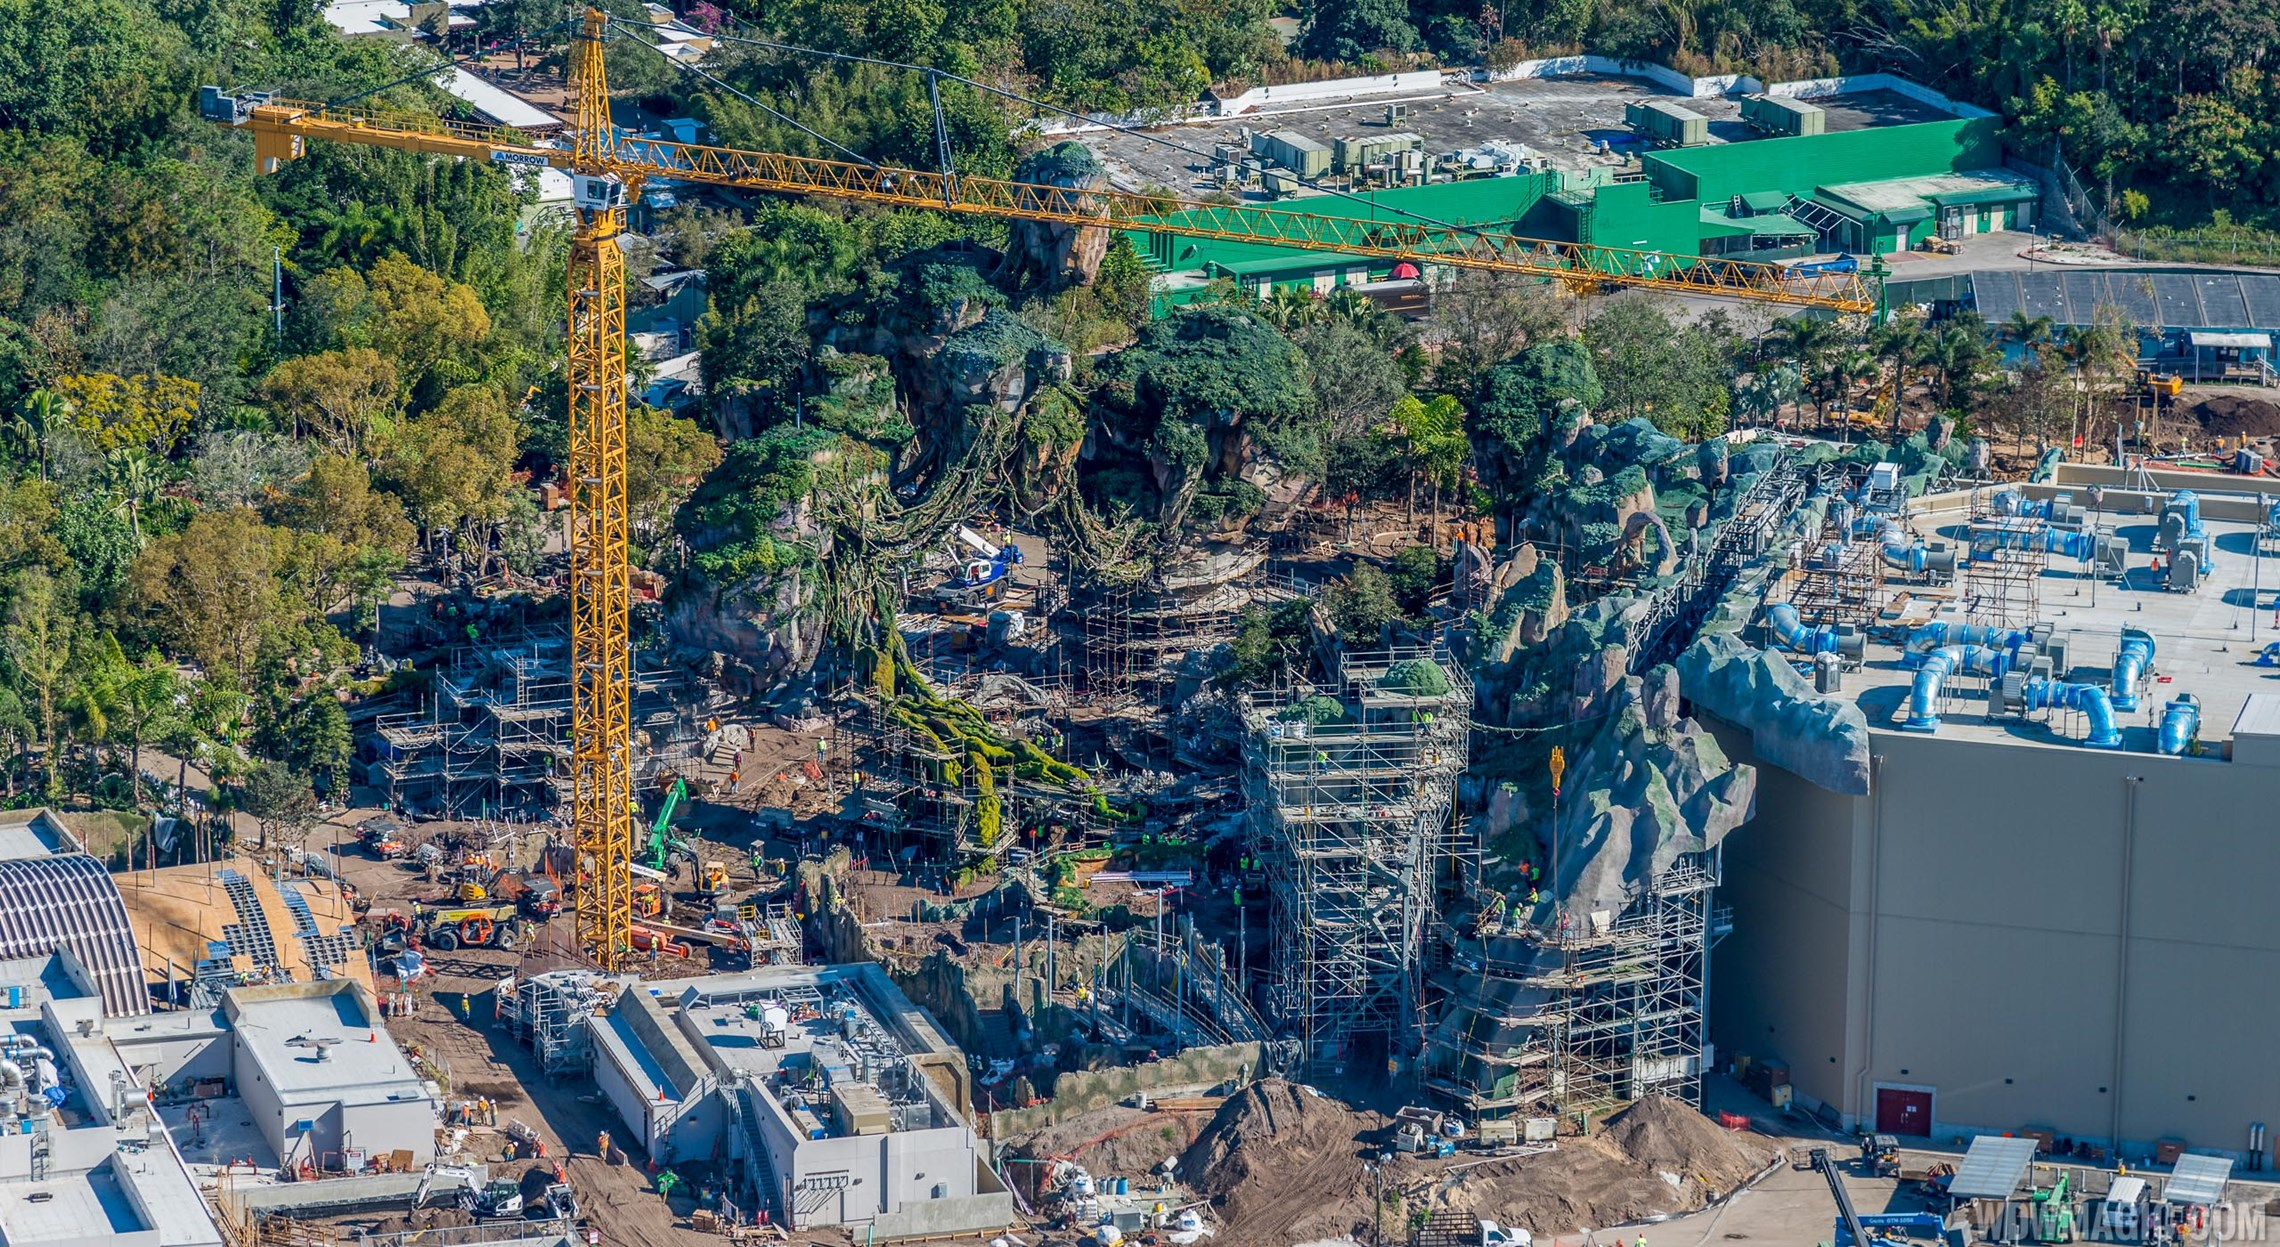 Aerial views of 'Pandora - The World of Avatar'